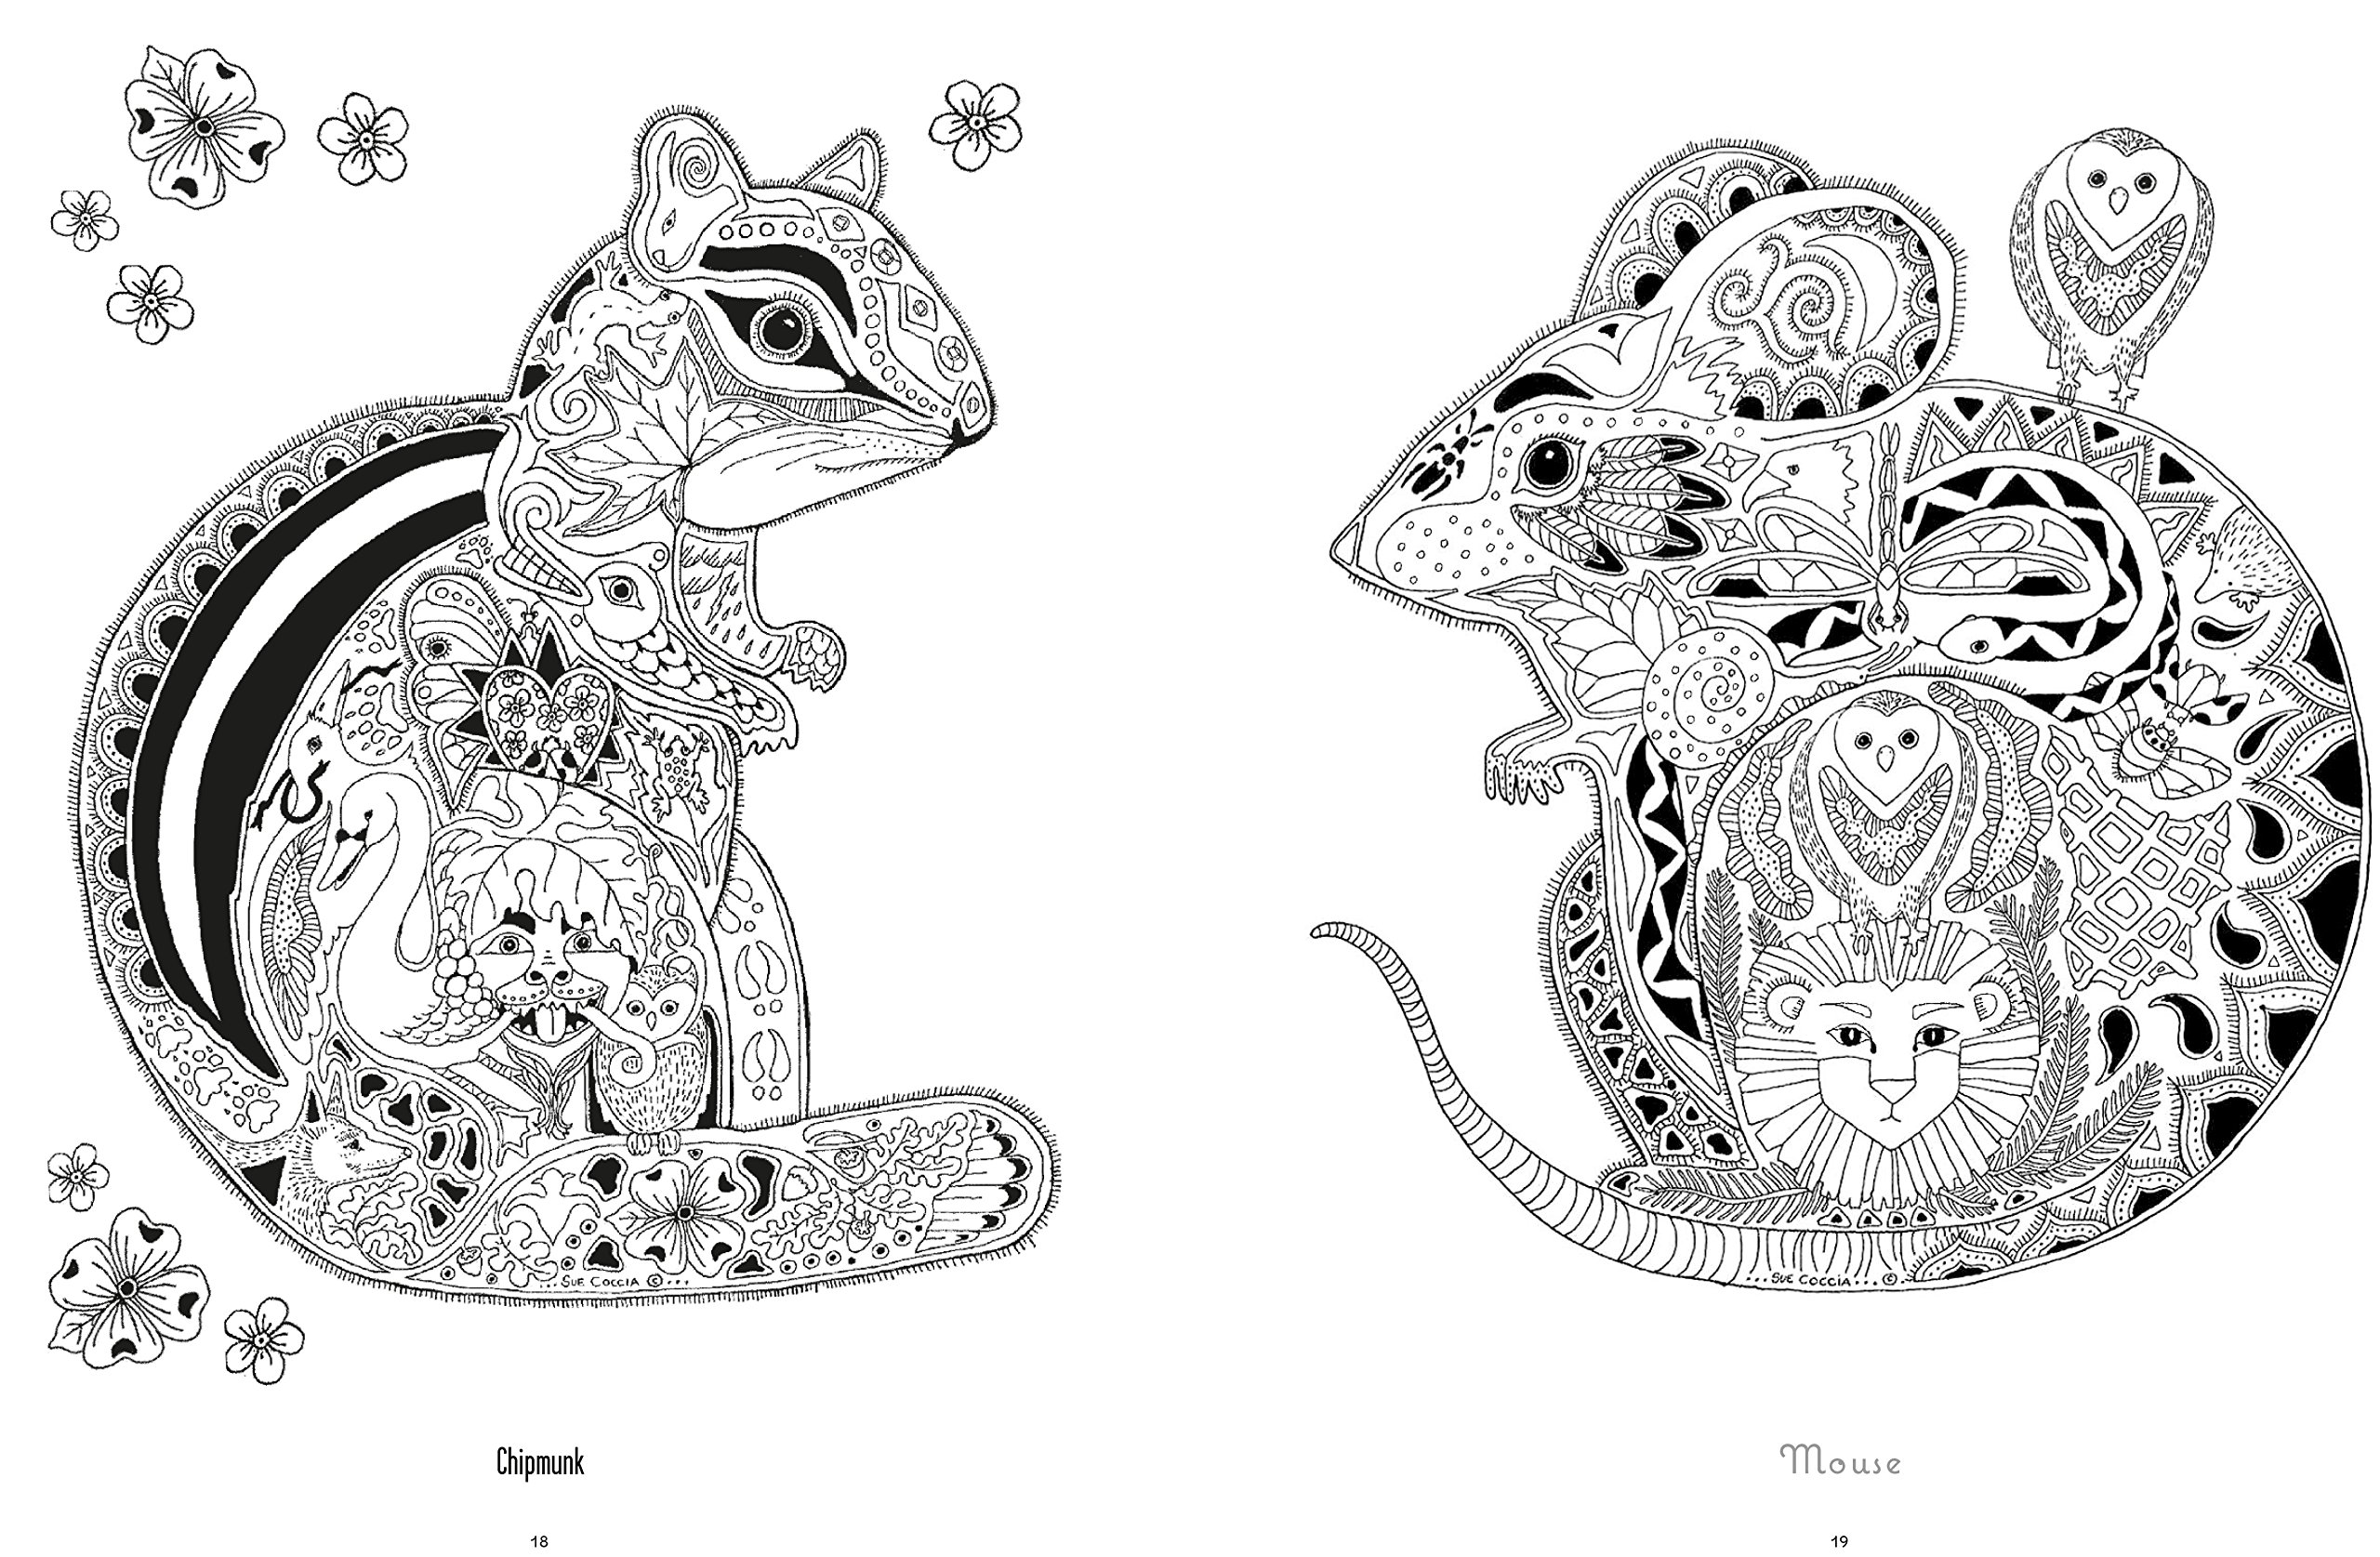 amazoncom color yourself to calmness and reduce stress with these animal motifs adult coloring books 9781782493242 cico books books - Color Books For Adults